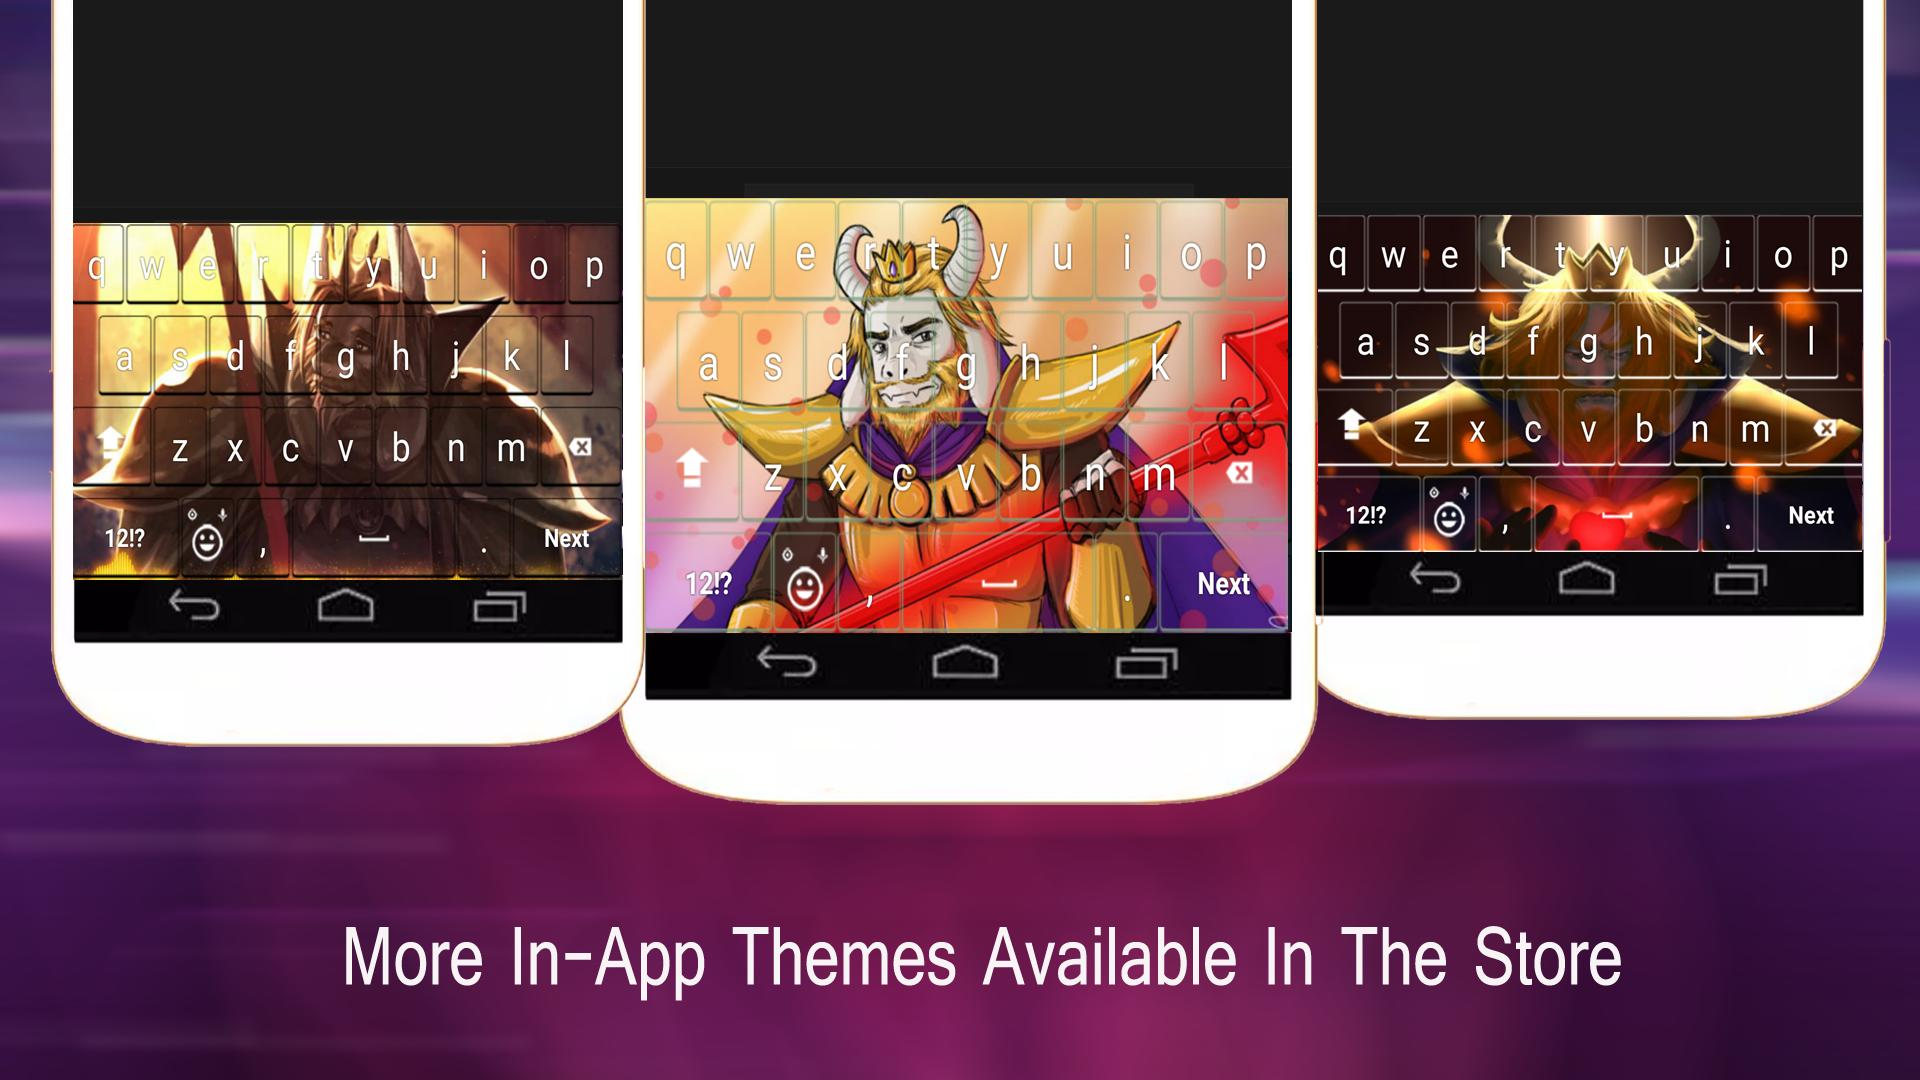 Asgore Dreemurr Undertale Keyboard for Android - APK Download